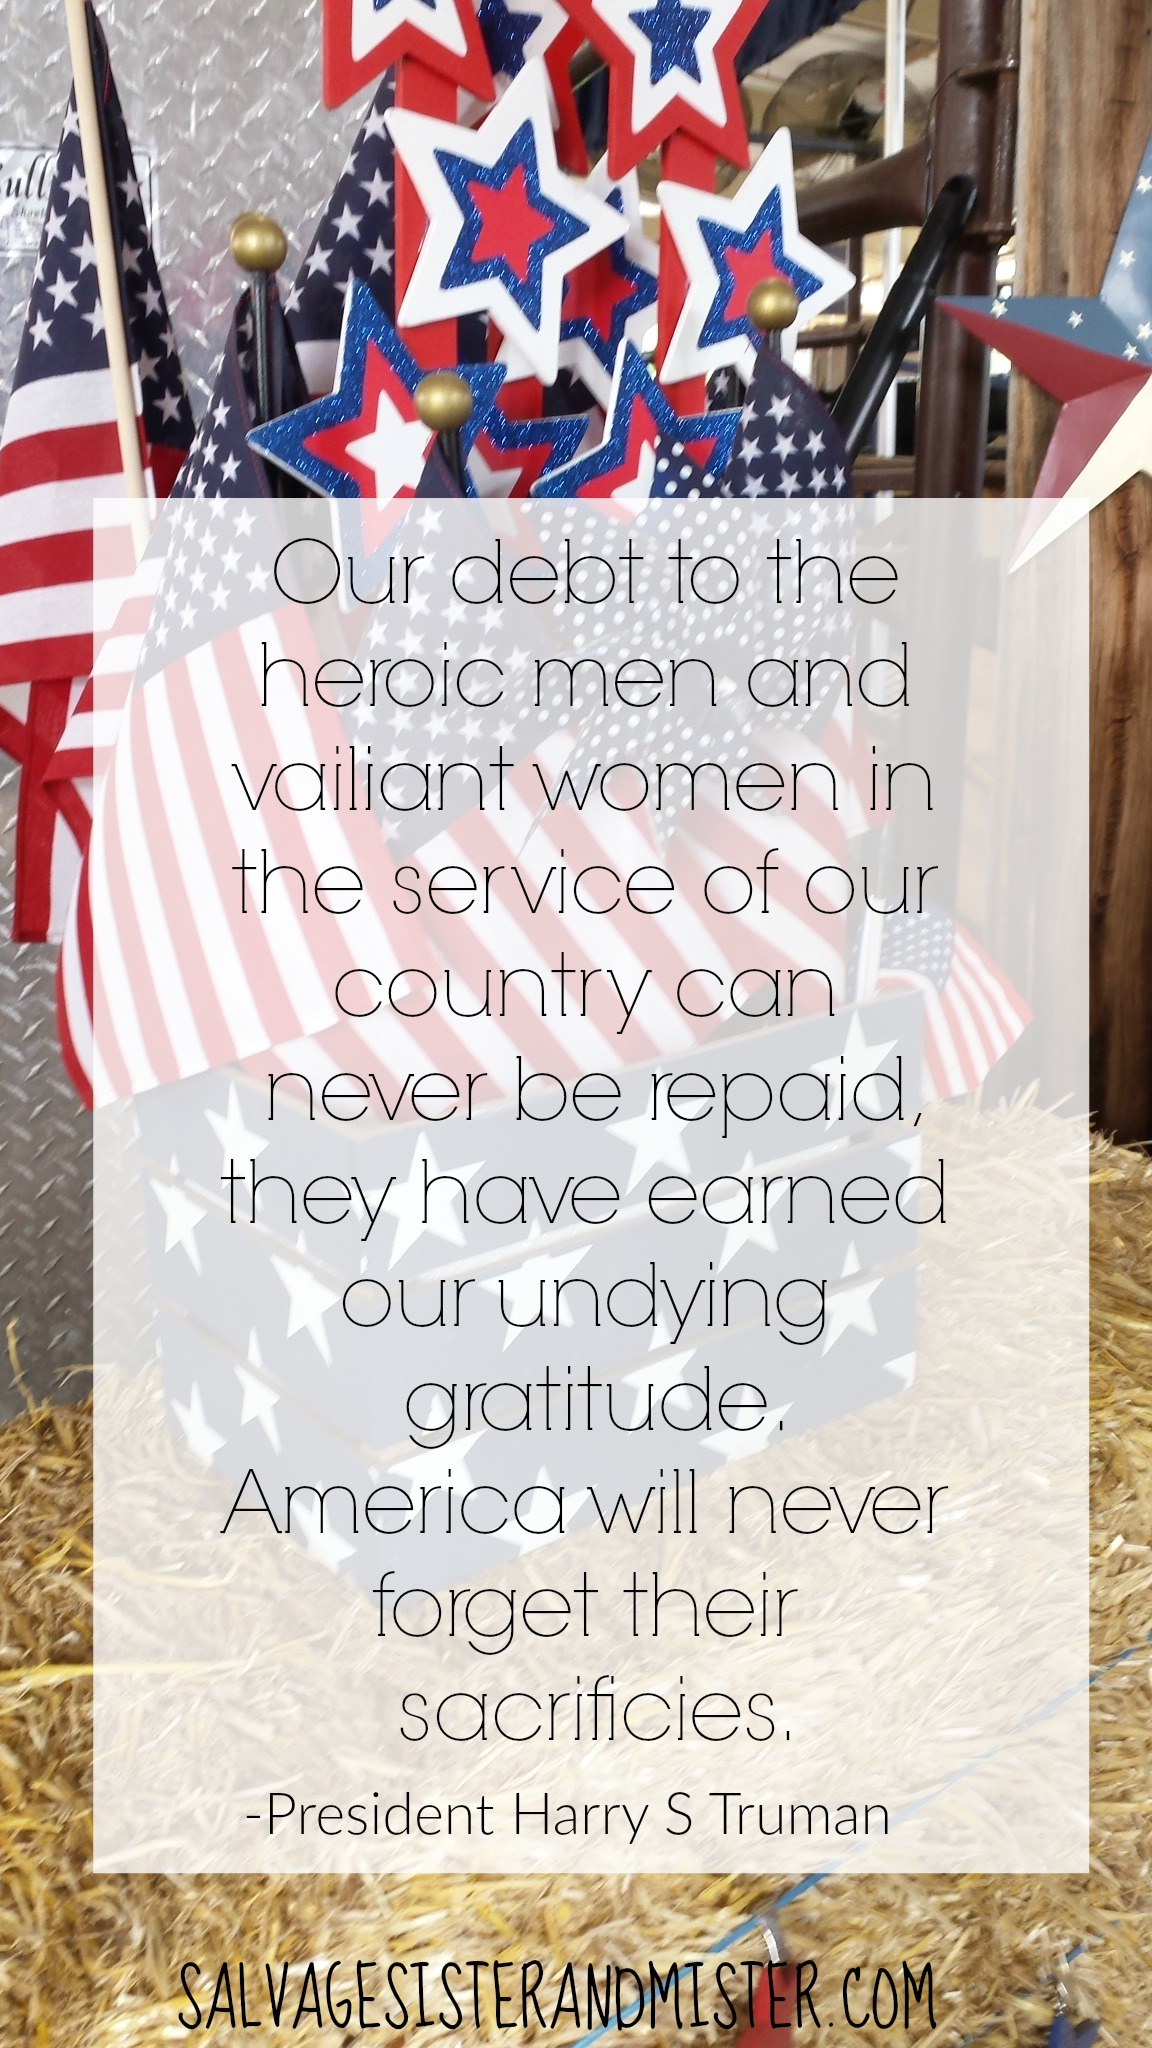 """Thankful to all those who have laid down their lives for our freedom. """"Our debt to the heroic men and vailiant women in the service of our country can never be repaid, they have earned our undying gratitude. America will never forget their sacrificies."""" Truman quote Memeorial day remembered"""